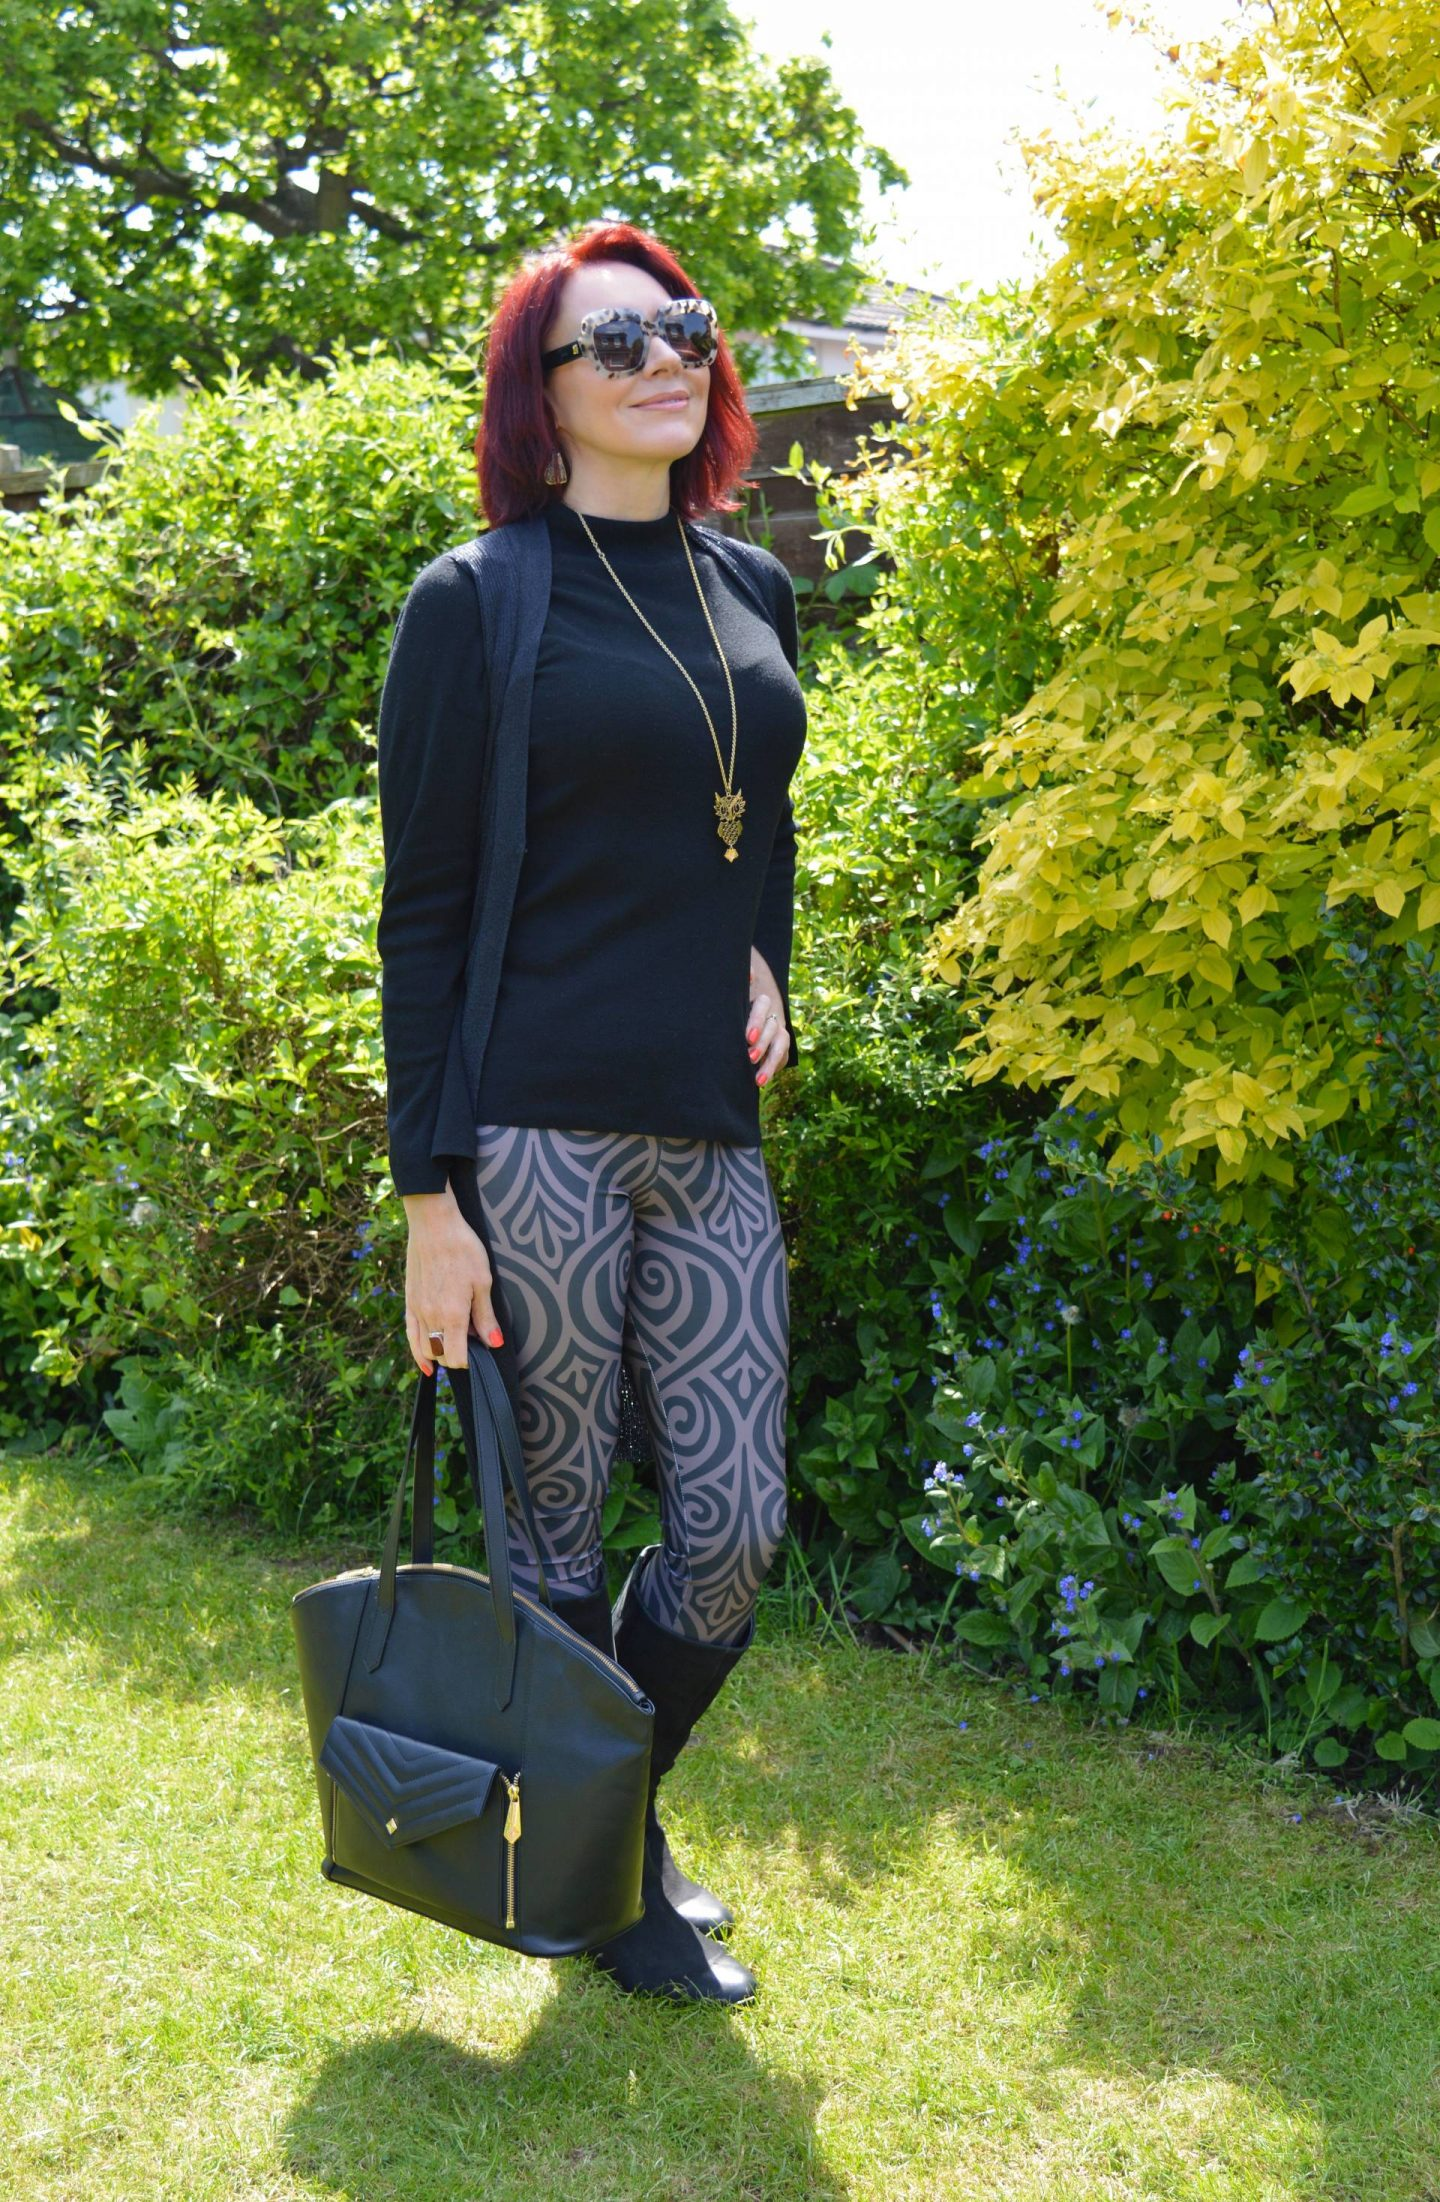 Workout leggings that are not just for the gym, Meadowlark Nouveau bands leggings, Jenifer Hamley vegan leather bag